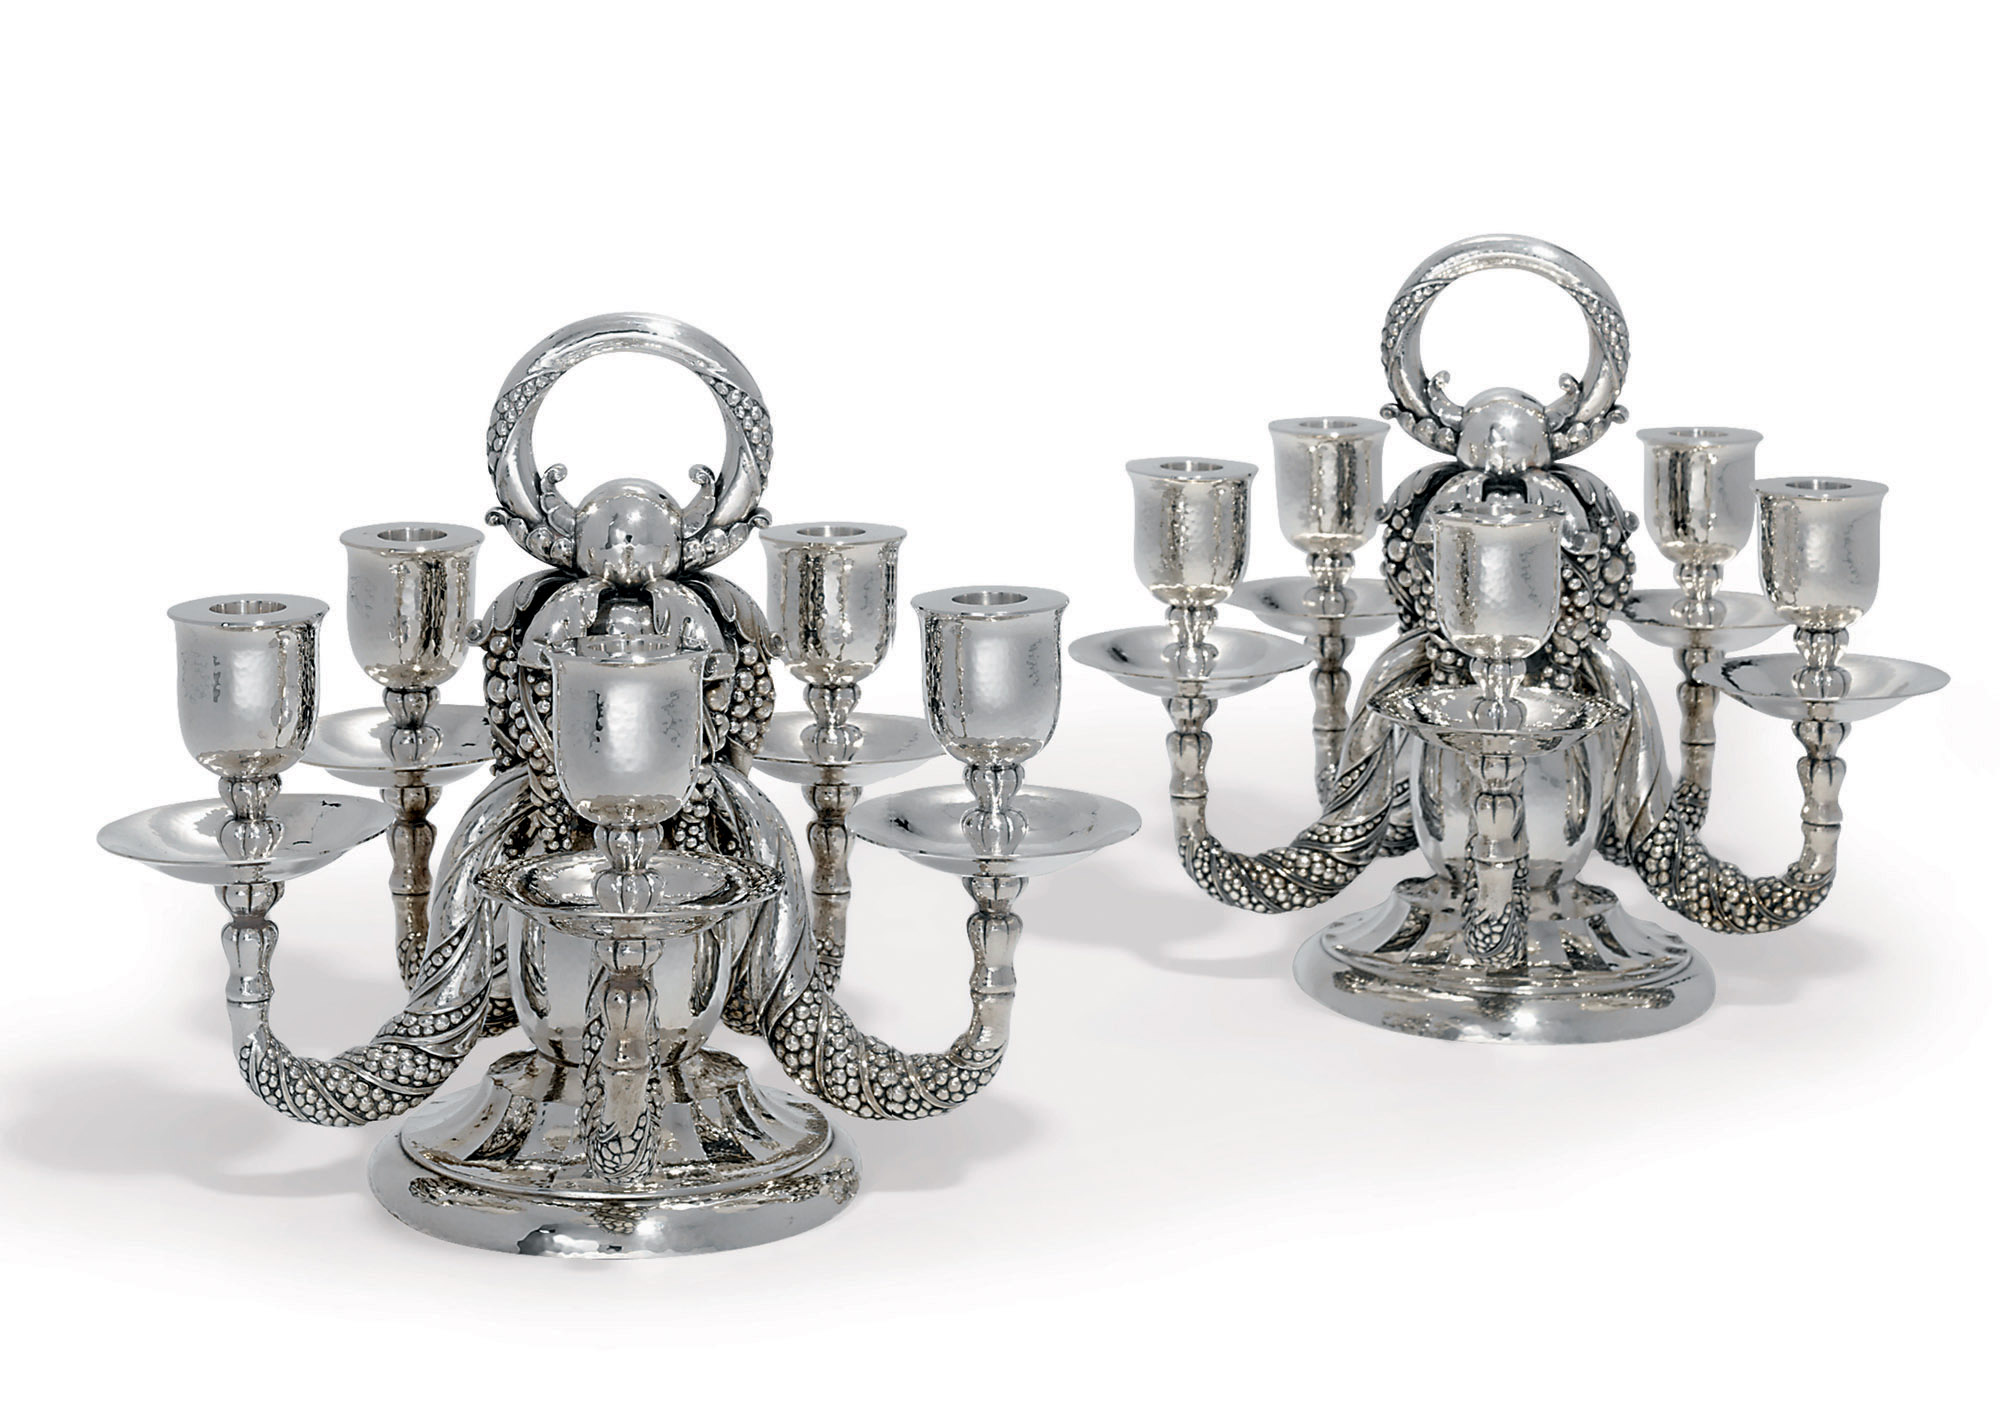 A PAIR OF DANISH FIVE-LIGHT CANDELABRA DESIGNED BY GEORG JENSEN